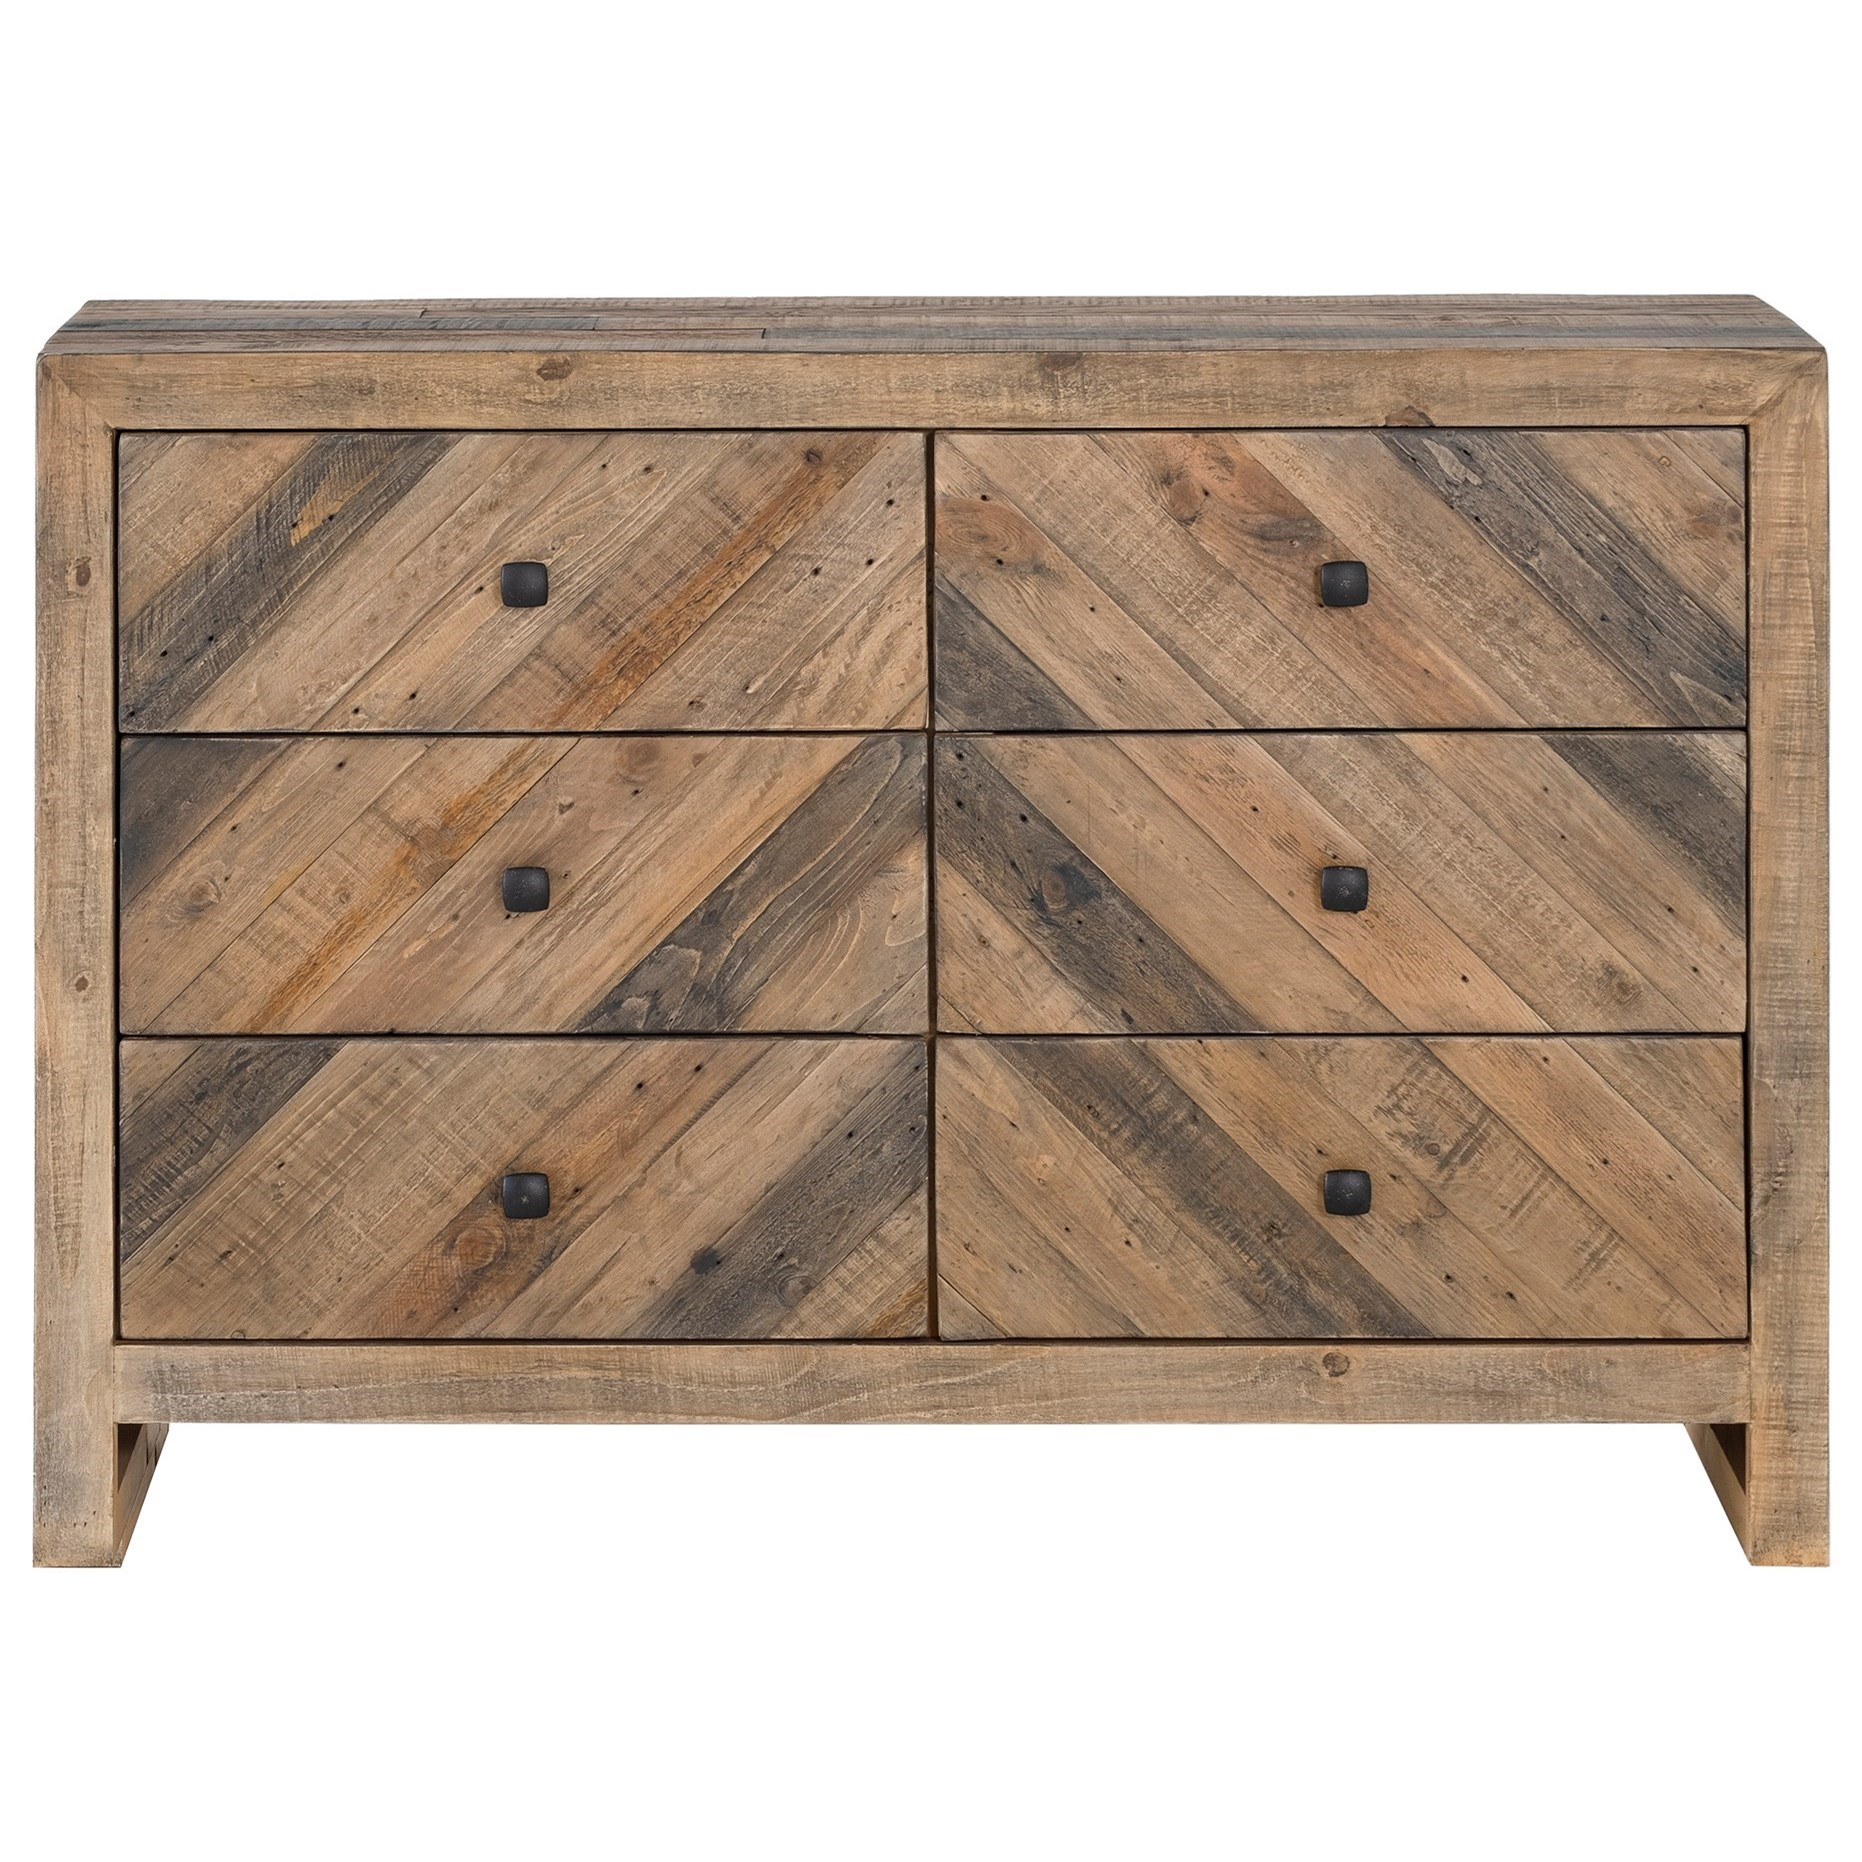 Teigen 6 Drawer Dresser by Moe's Home Collection at Stoney Creek Furniture